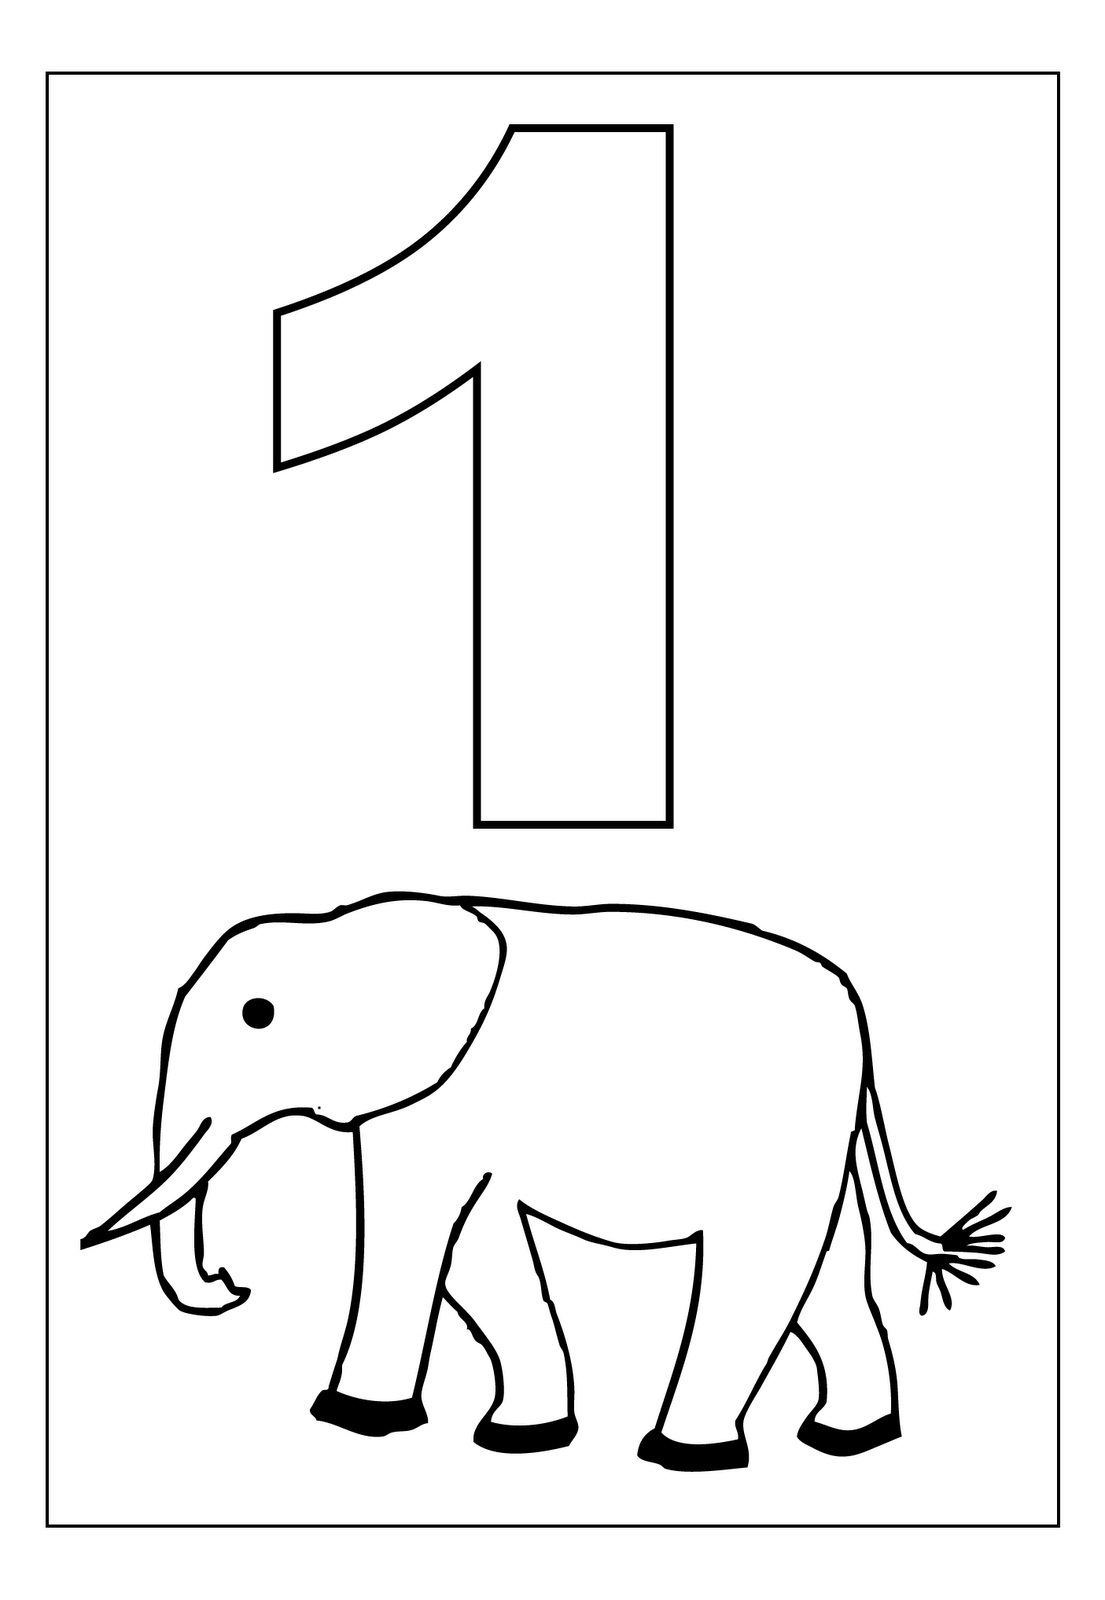 1 coloring pages free printable number coloring pages for kids coloring pages 1